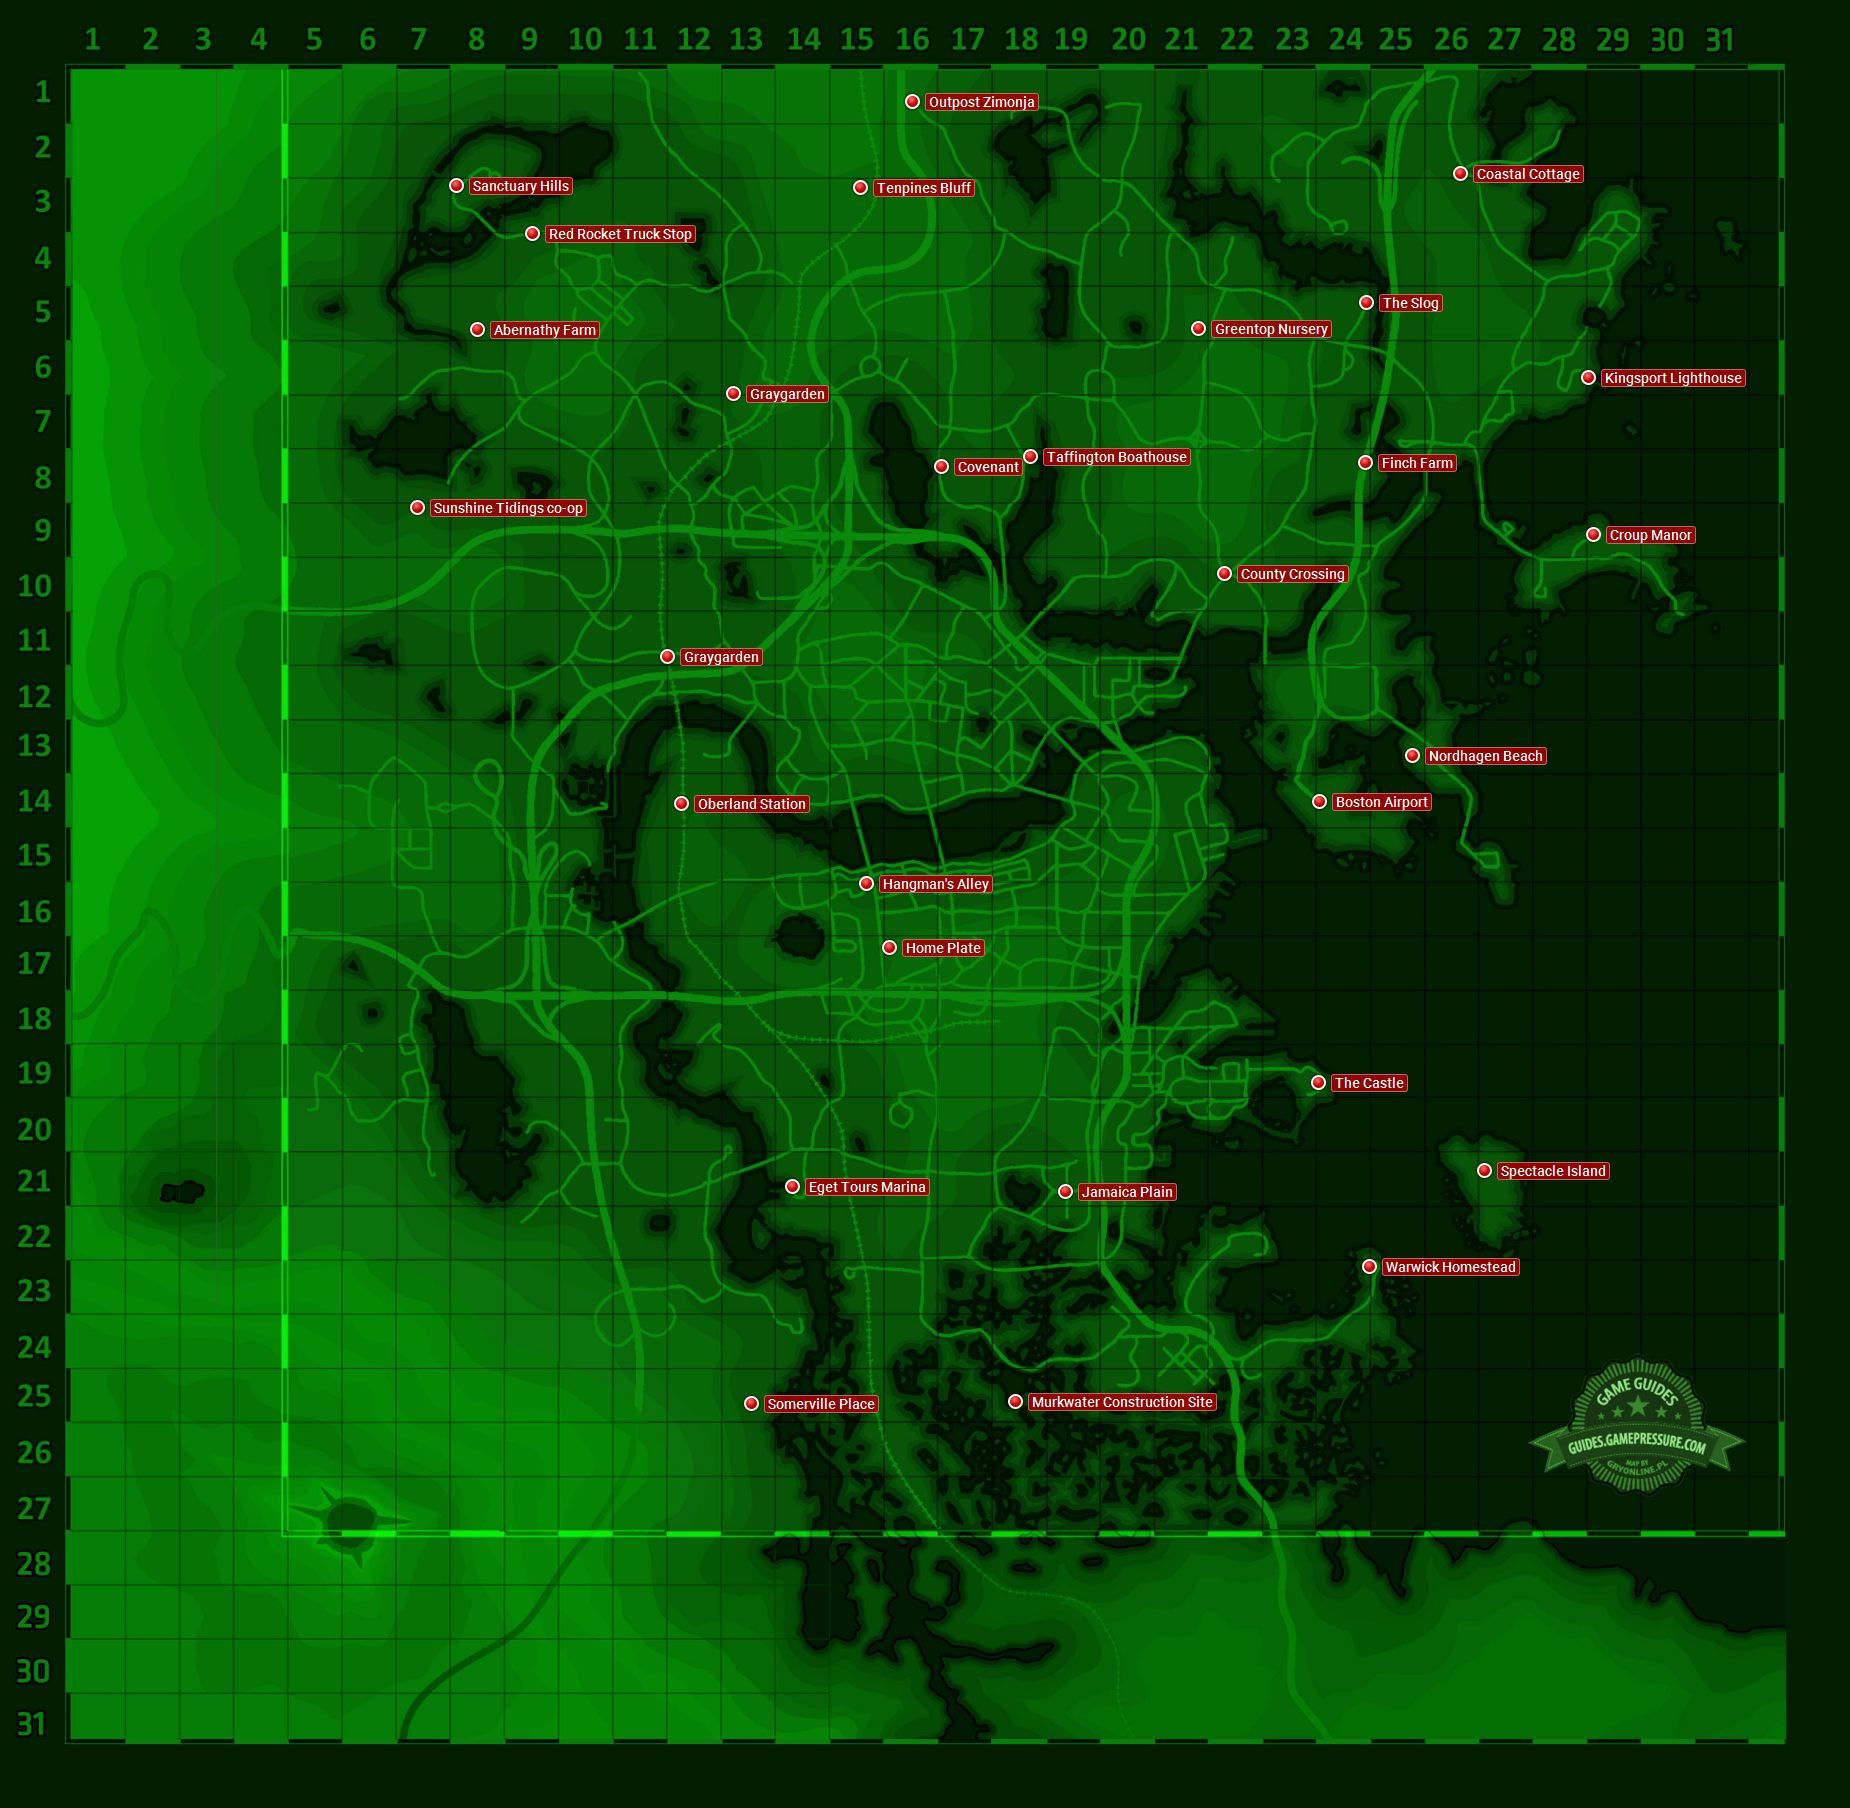 Fallout 4 - World map: Settlements